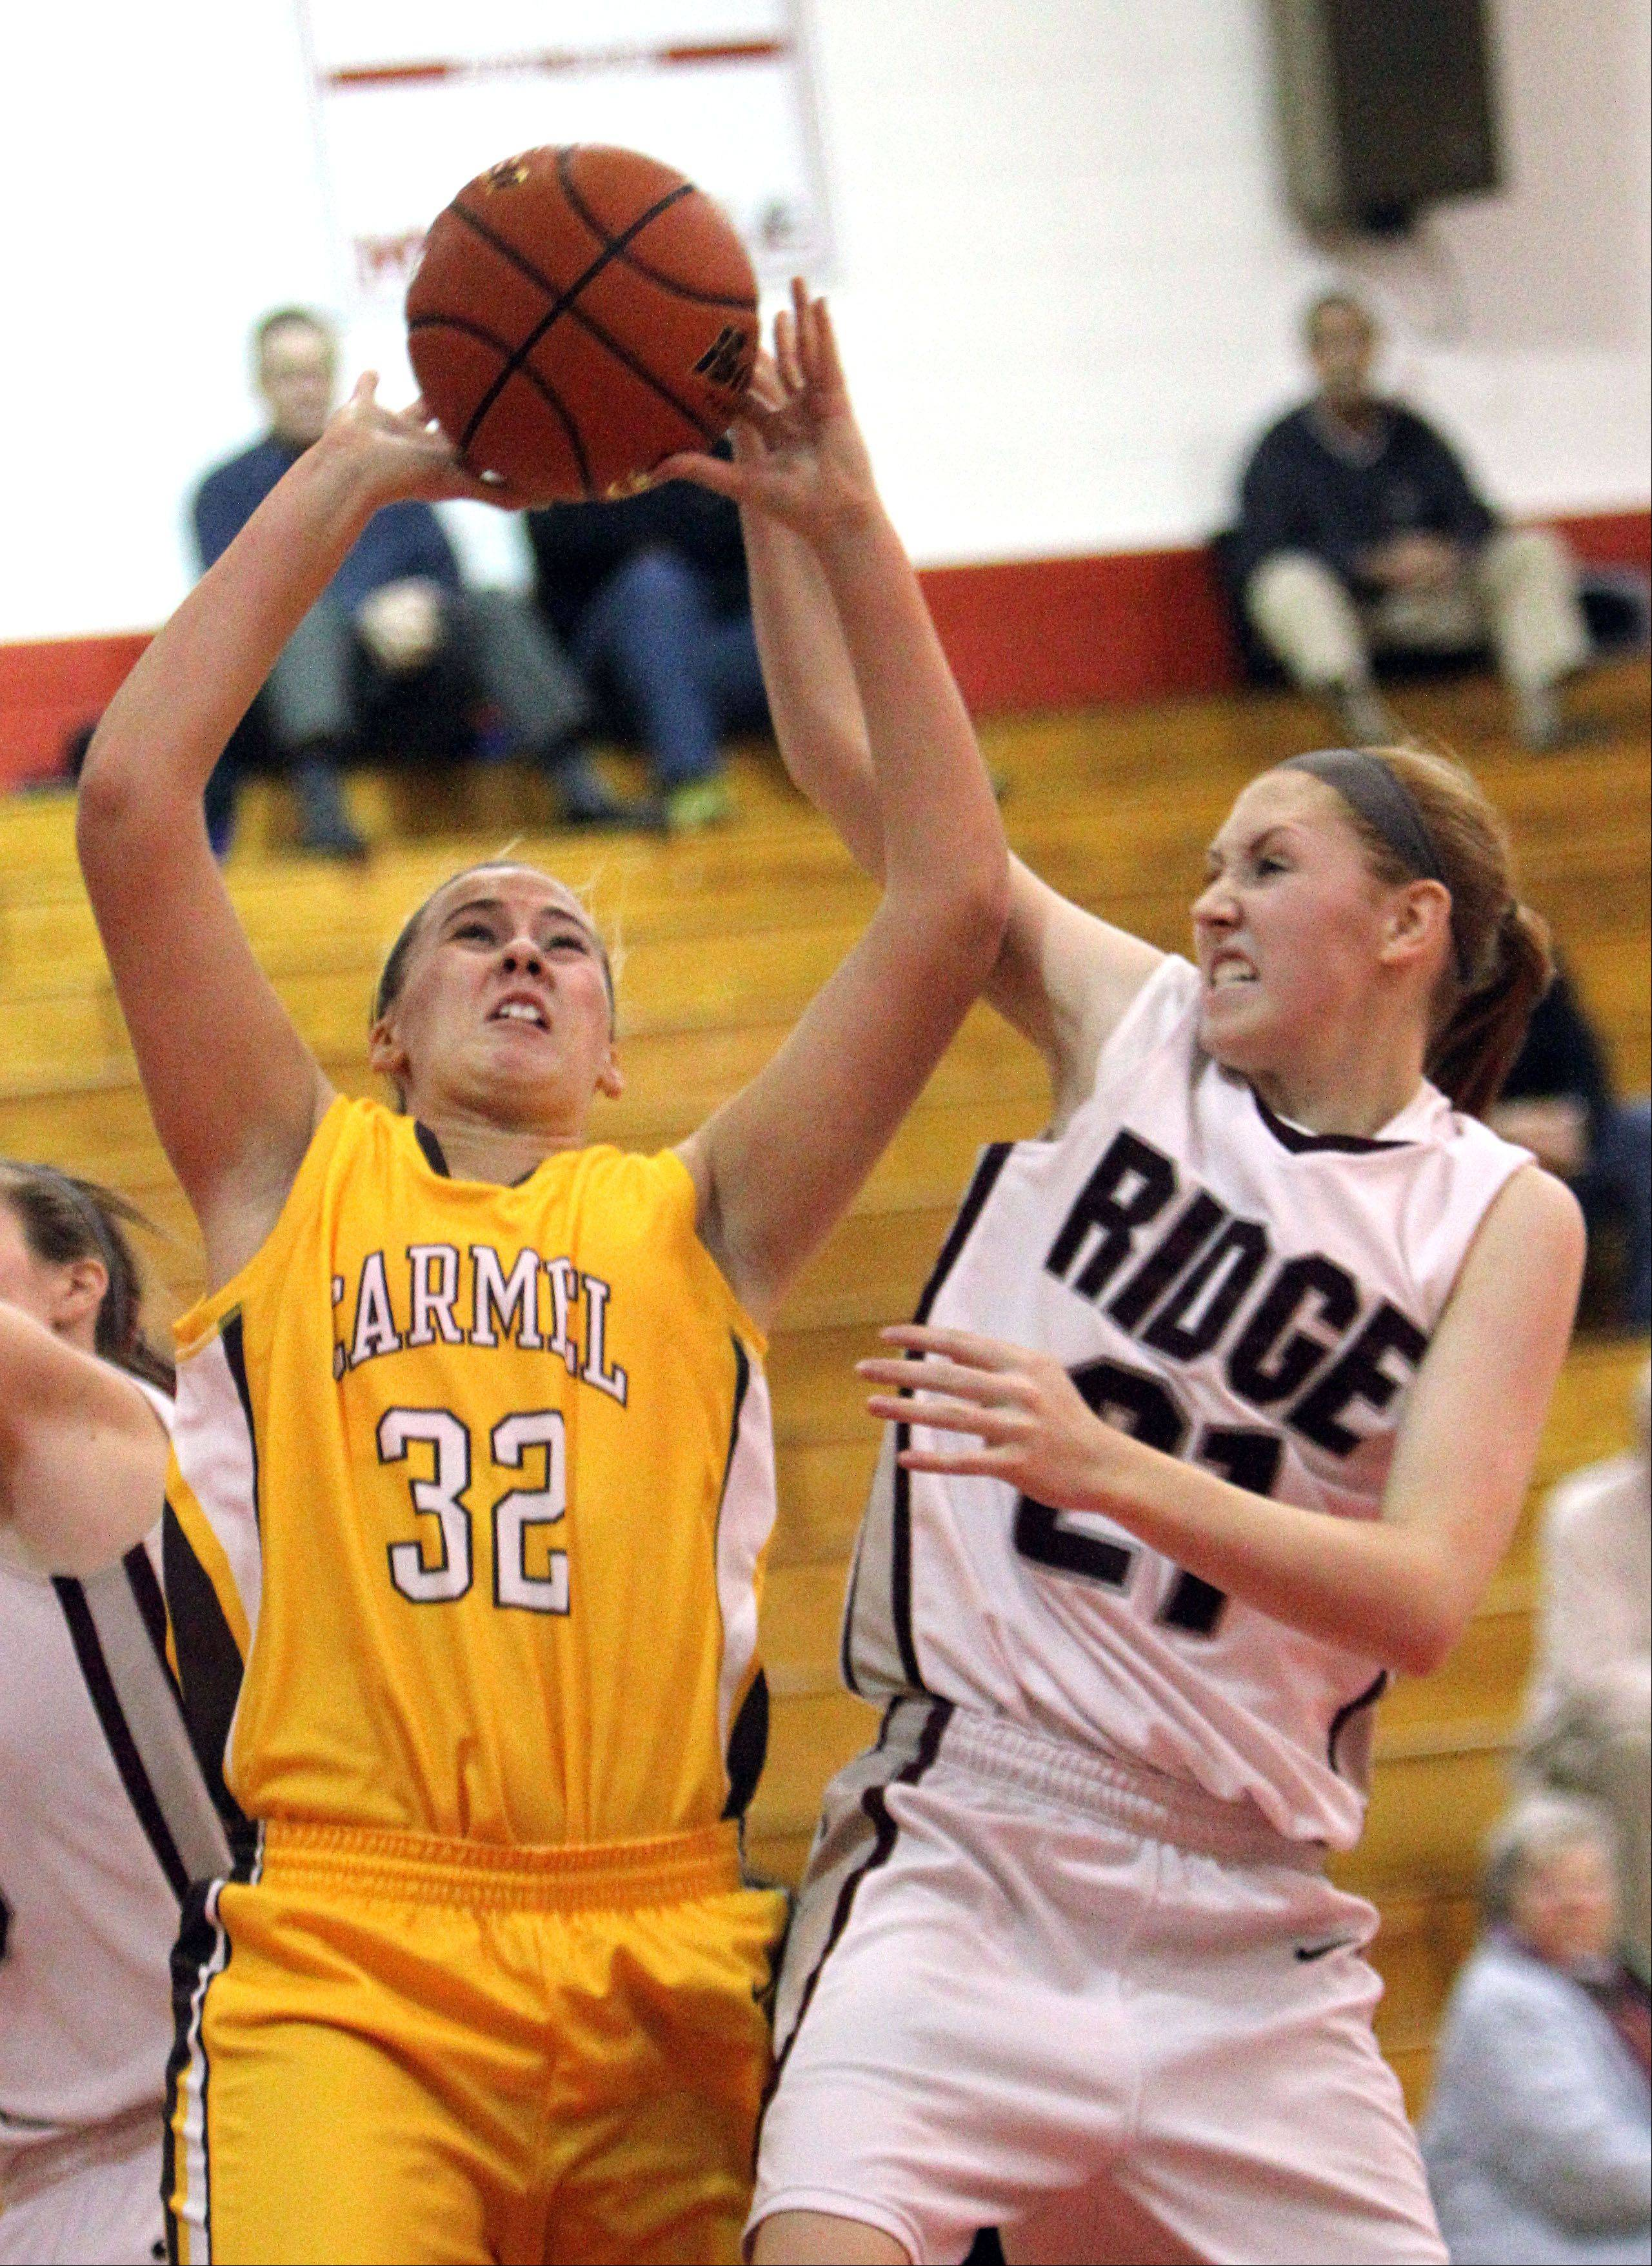 Carmel's Emma Rape, left, drives on Prairie Ridge's Kelly Klendworth at the Mundelein Turkey Tournament on Monday.